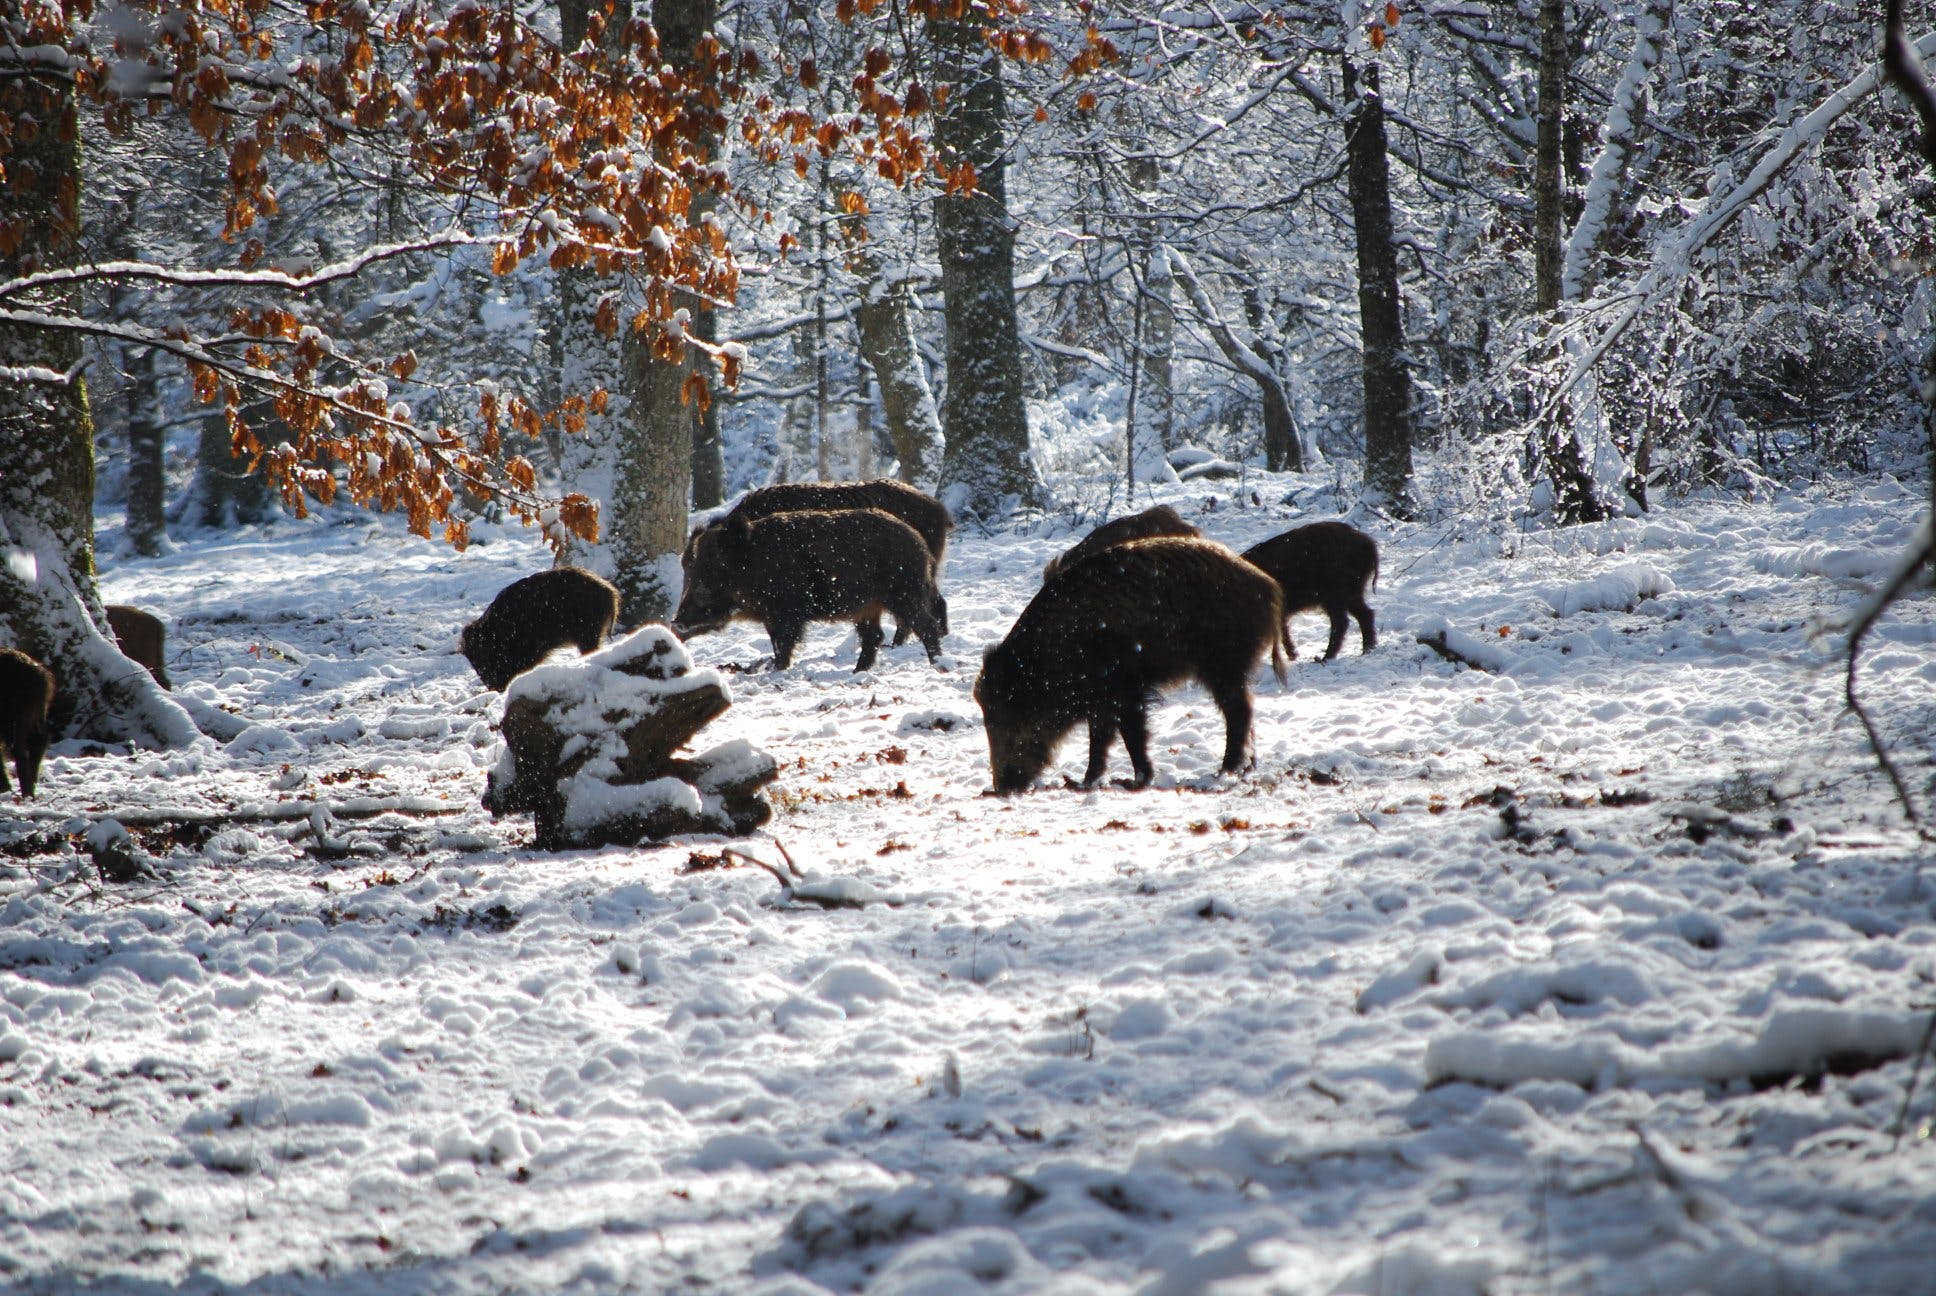 Boars on Snow Near Trees